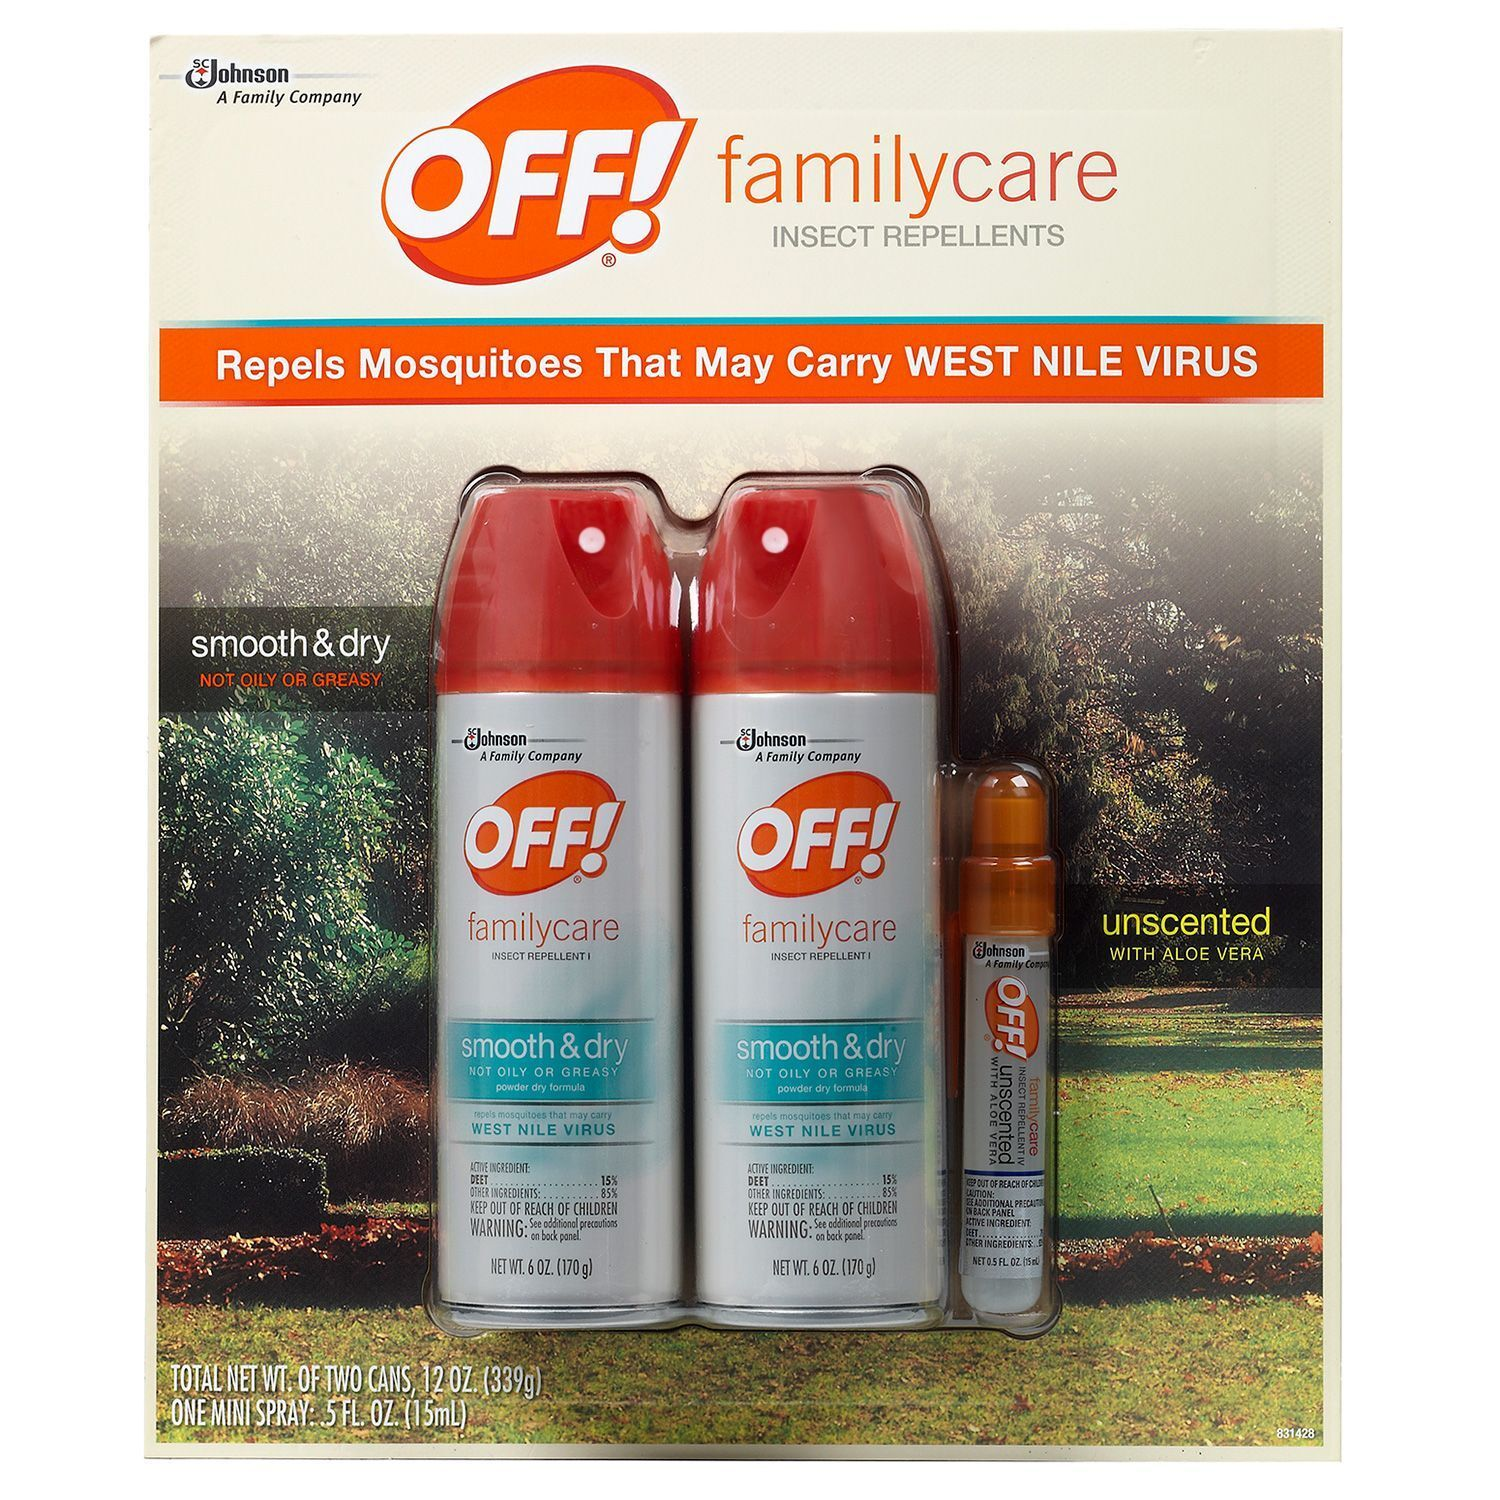 OFF Insect Repellent Family Care 3 Pack Smooth and Dry